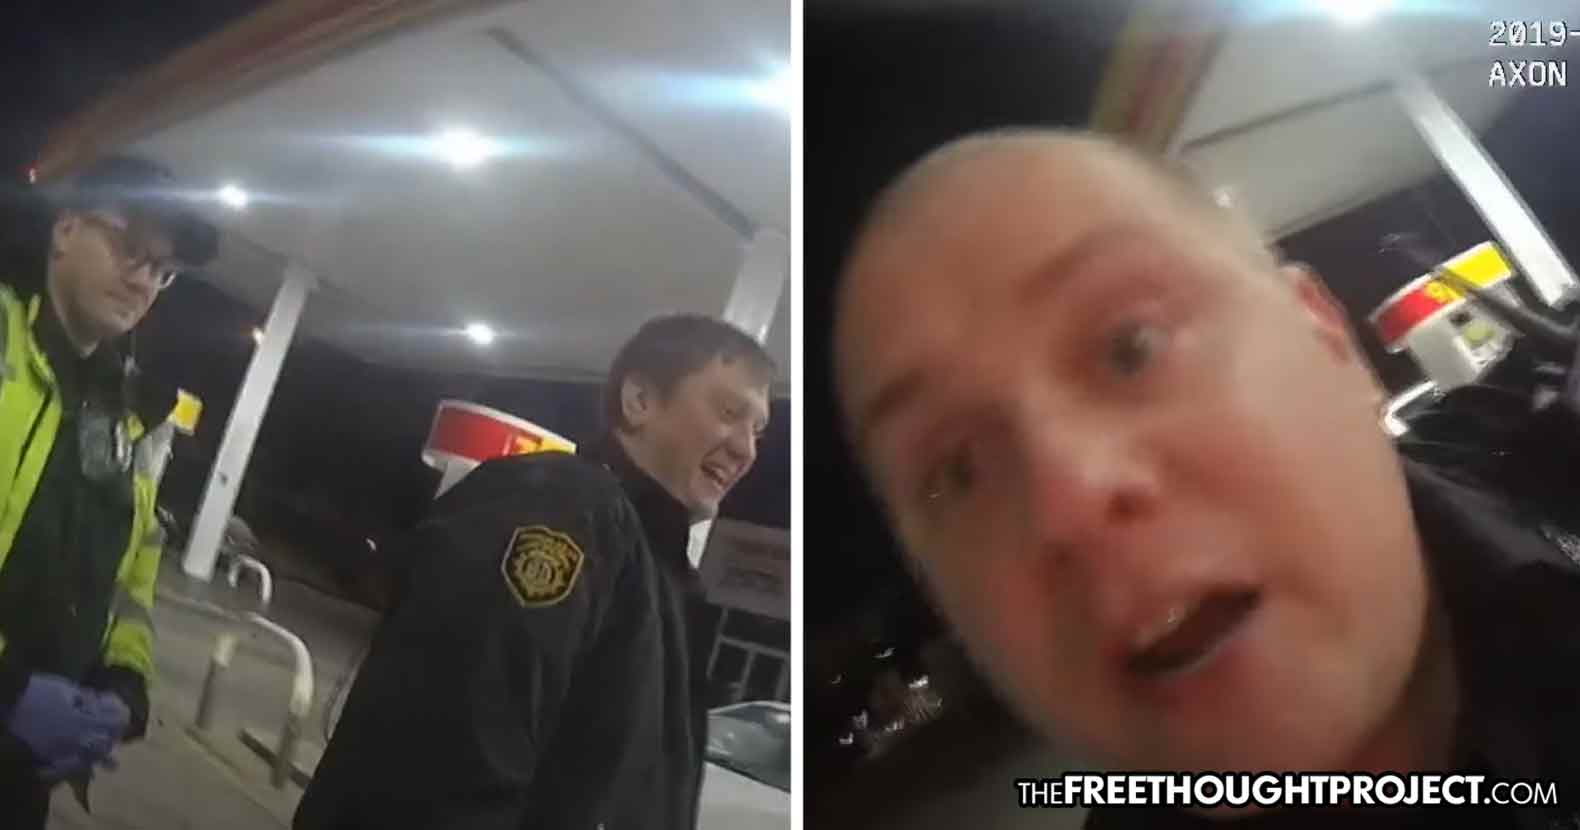 Tennessee Cop Caught on Tape Sexually Harassing Woman And